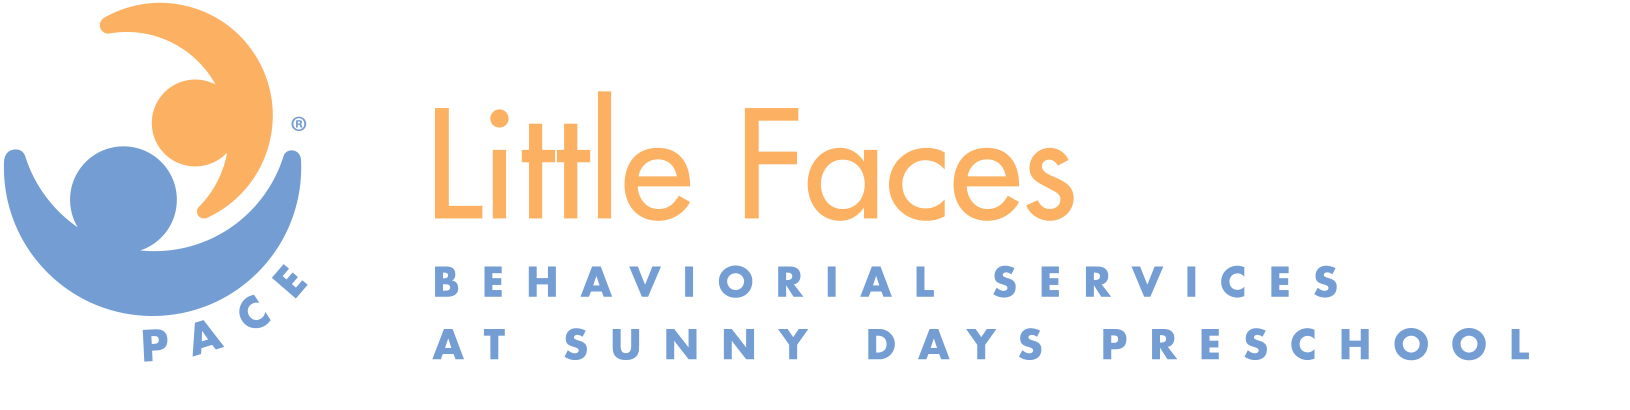 PACE Little Faces Behavioral Services at Sunny Days Preschool